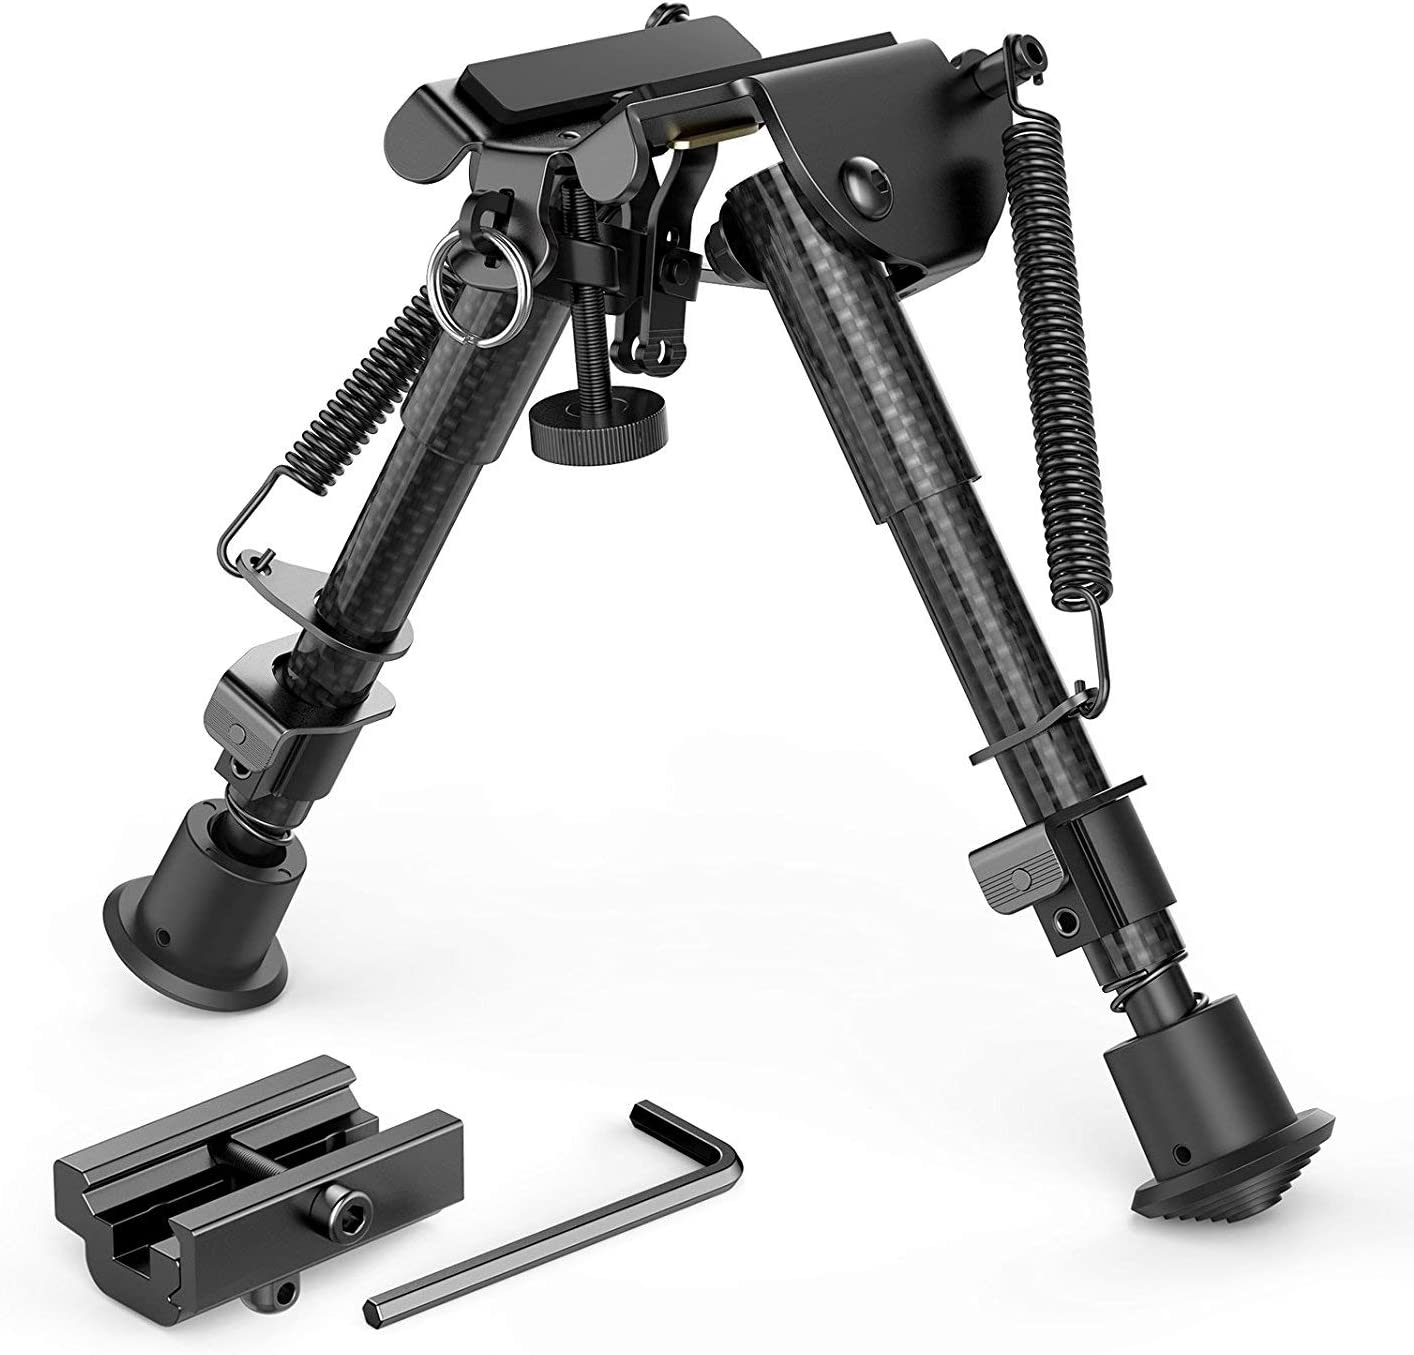 """XAEGIS CARBON FIBER 6""""-9"""" INCH BIPOD WITH PICATINNY ADAPTER  BIPOD FOR RUGER PRECISION RIFLE"""